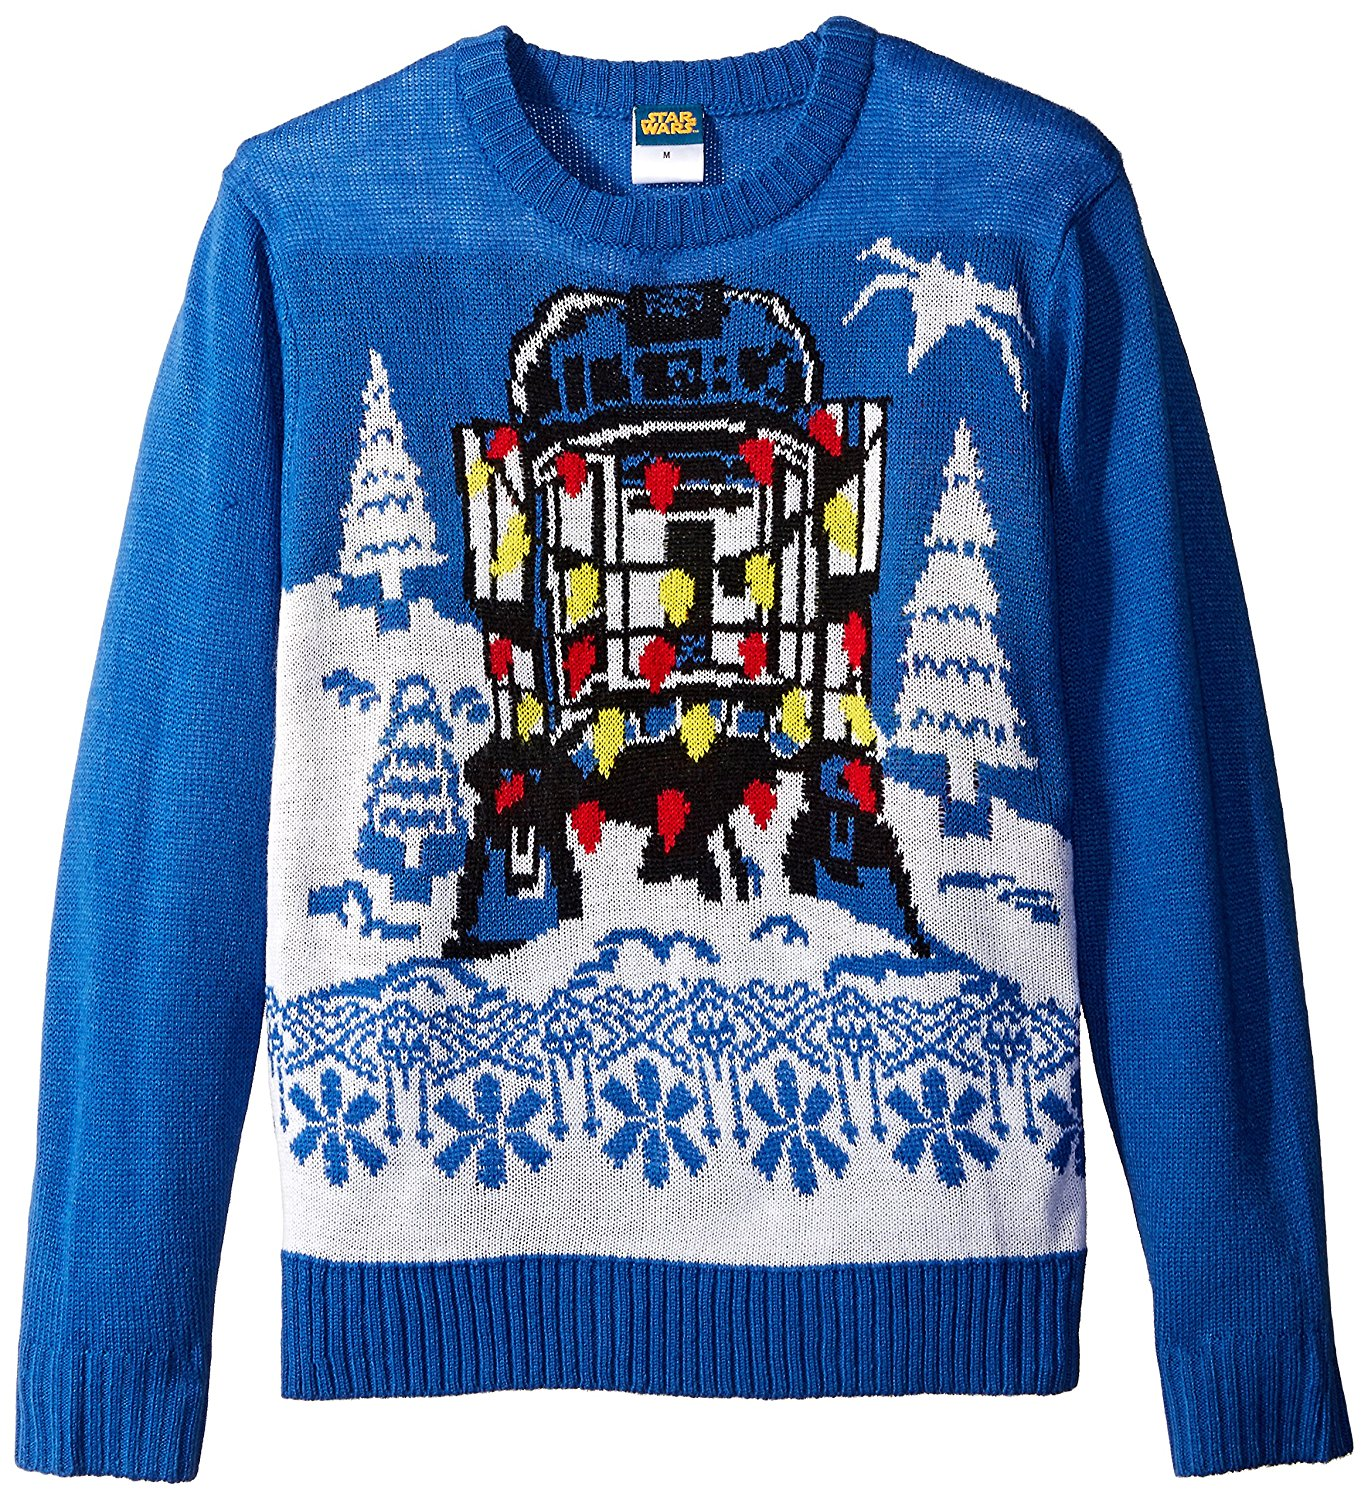 Hybrid Apparel Women's Star Wars R2d2 Holiday Sweater with Music. by Hybrid Apparel. $ $ 29 99 Prime. FREE Shipping on eligible orders. Some sizes/colors are Prime eligible. out of 5 stars Product Features Cotton/polyester blend knit sweater. Star Wars Men's Darth Vader Holiday Sweater.